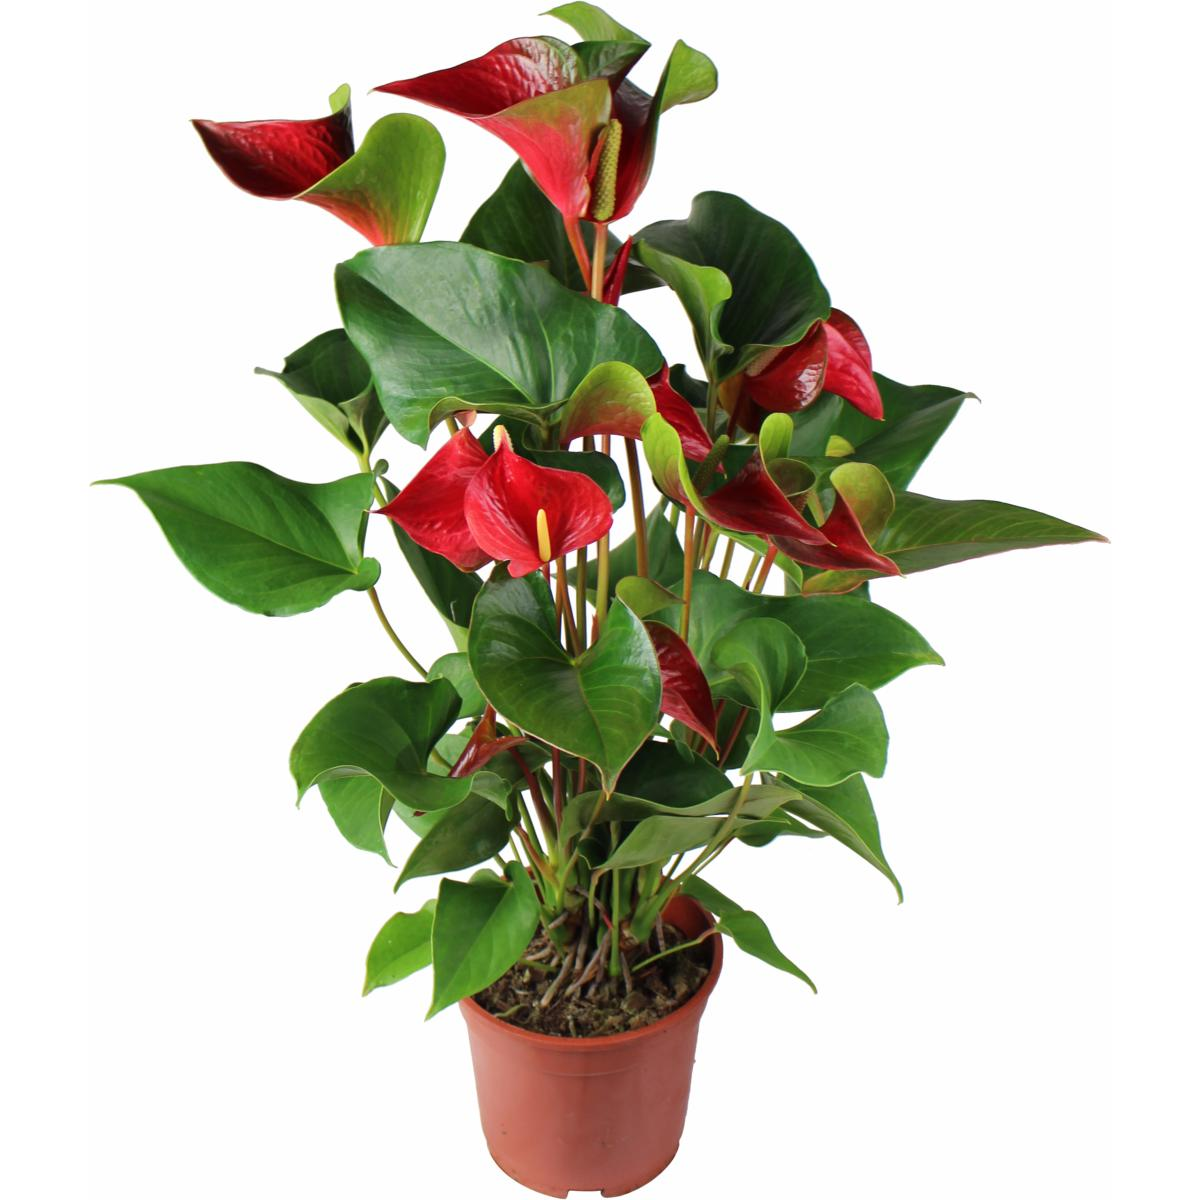 la fontaine fleurie plante anthurium en pot. Black Bedroom Furniture Sets. Home Design Ideas